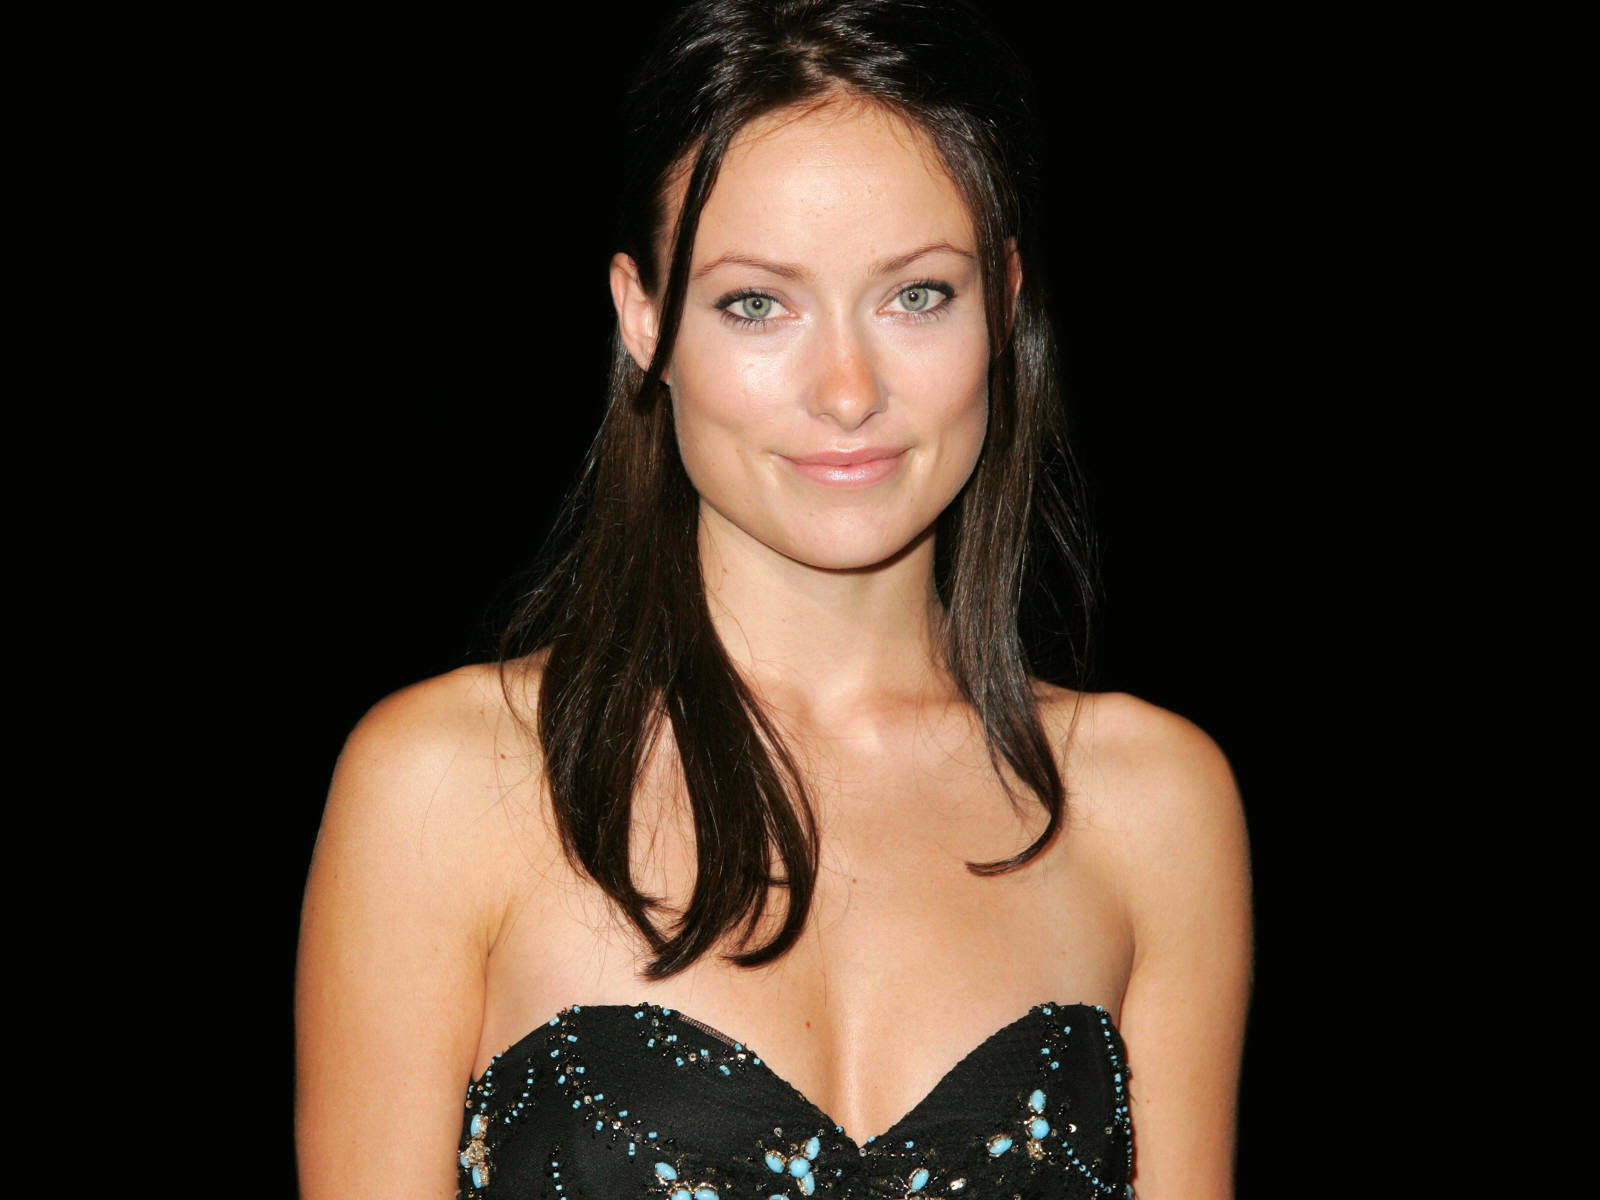 Olivia Wilde Pro And New Pictures 2013 World